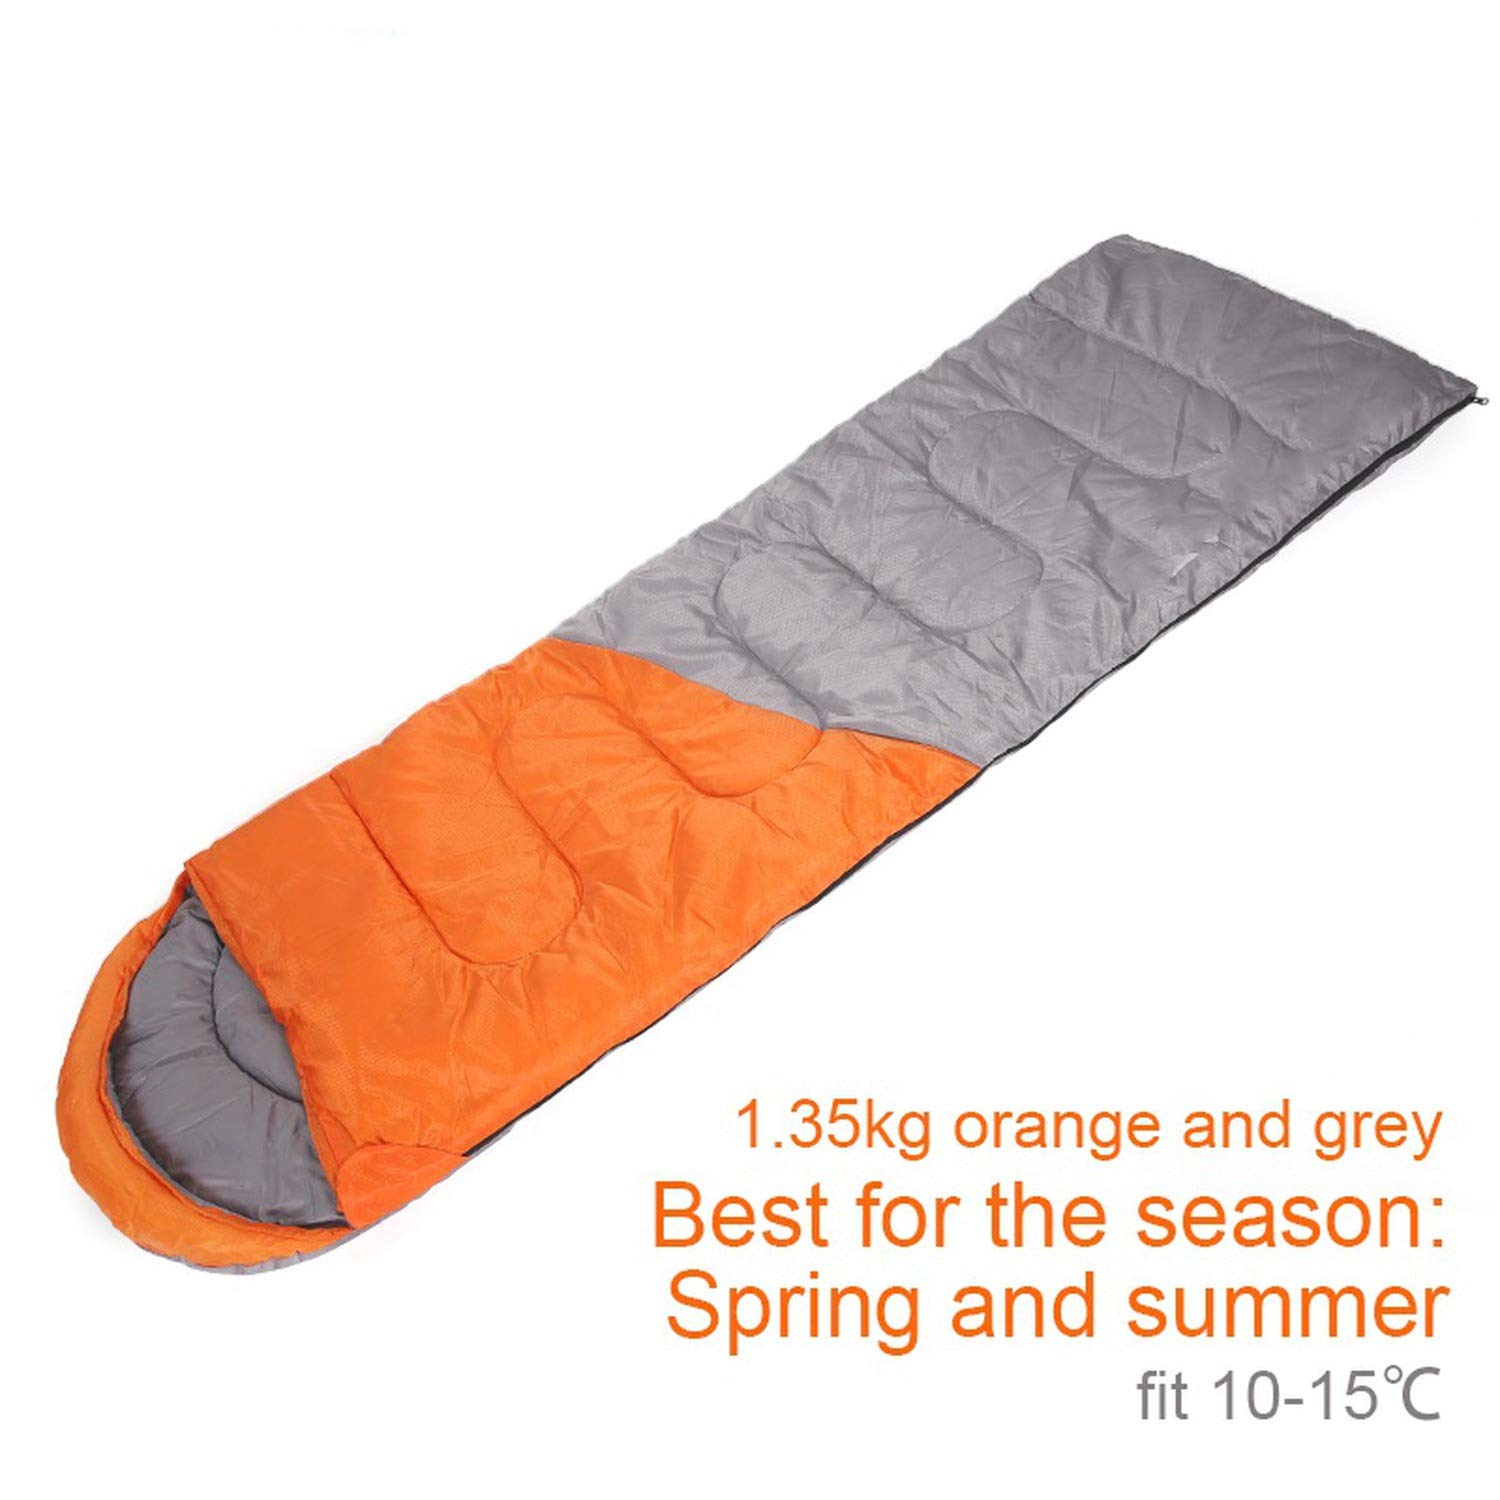 1.35kgRIGHT zipper O Size Warm Splicing Sleeping Bag Outdoor Sport Waterproof Sleeping Bag Comfortable Heated Lazy Bag Adult Winter Camping